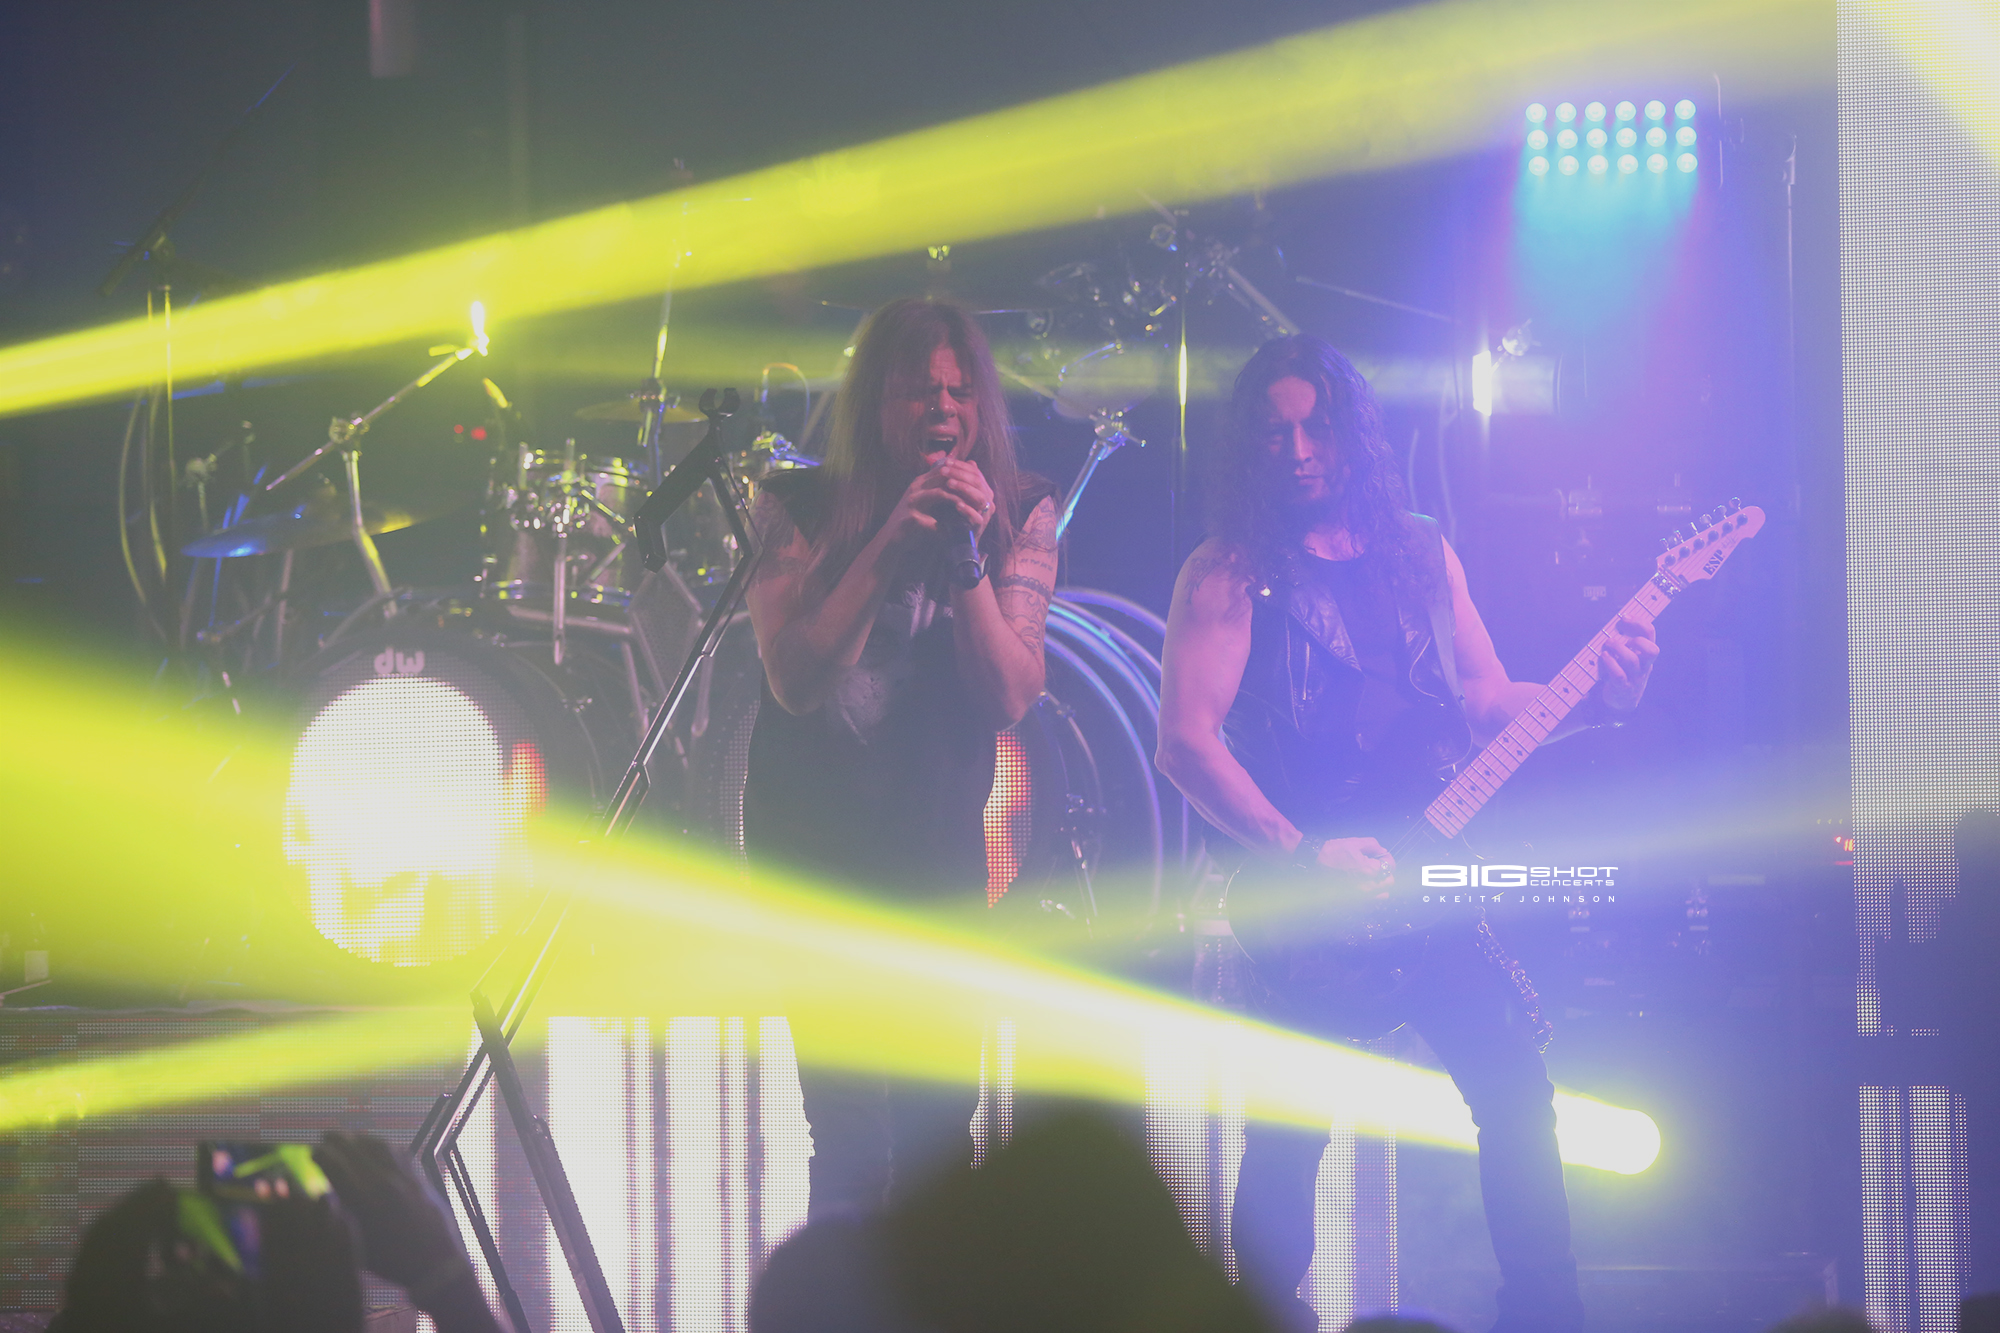 Queensrÿche The Verdict Tour - Ft. Lauderdale, Florida